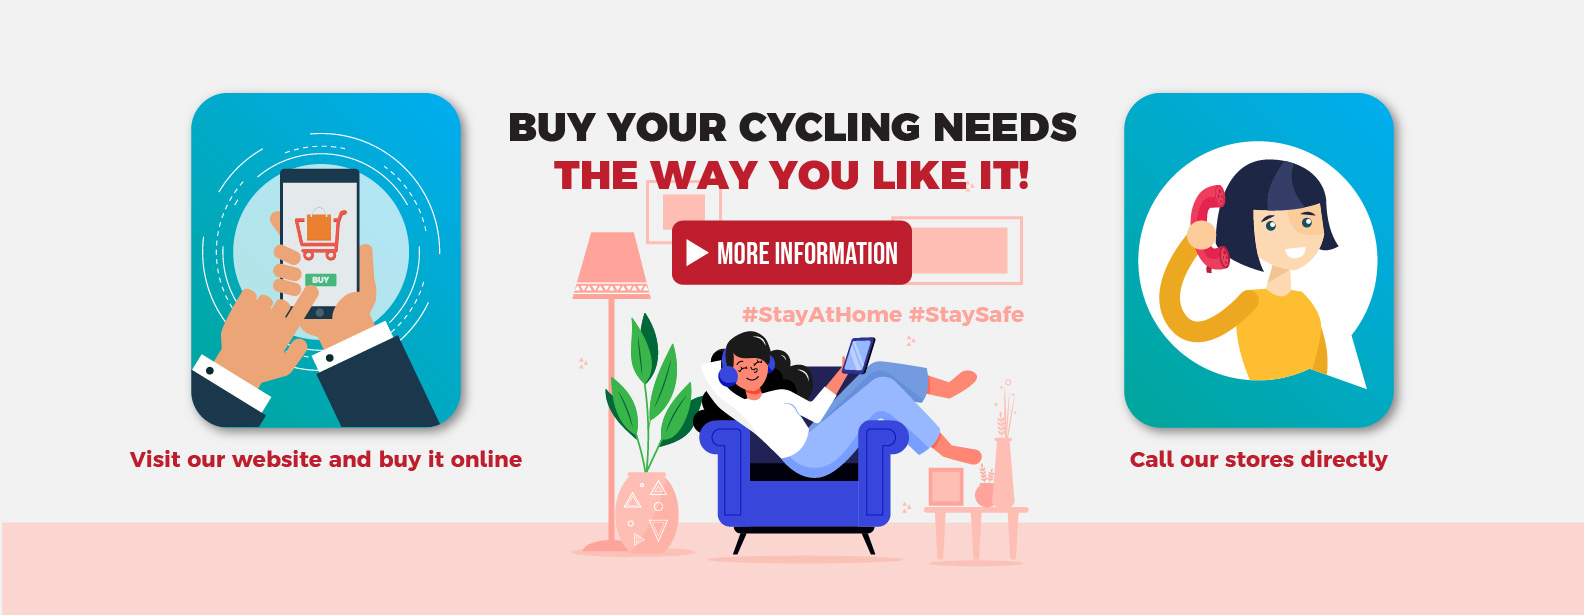 Buy Your Cycling Needs The Way You Like It!